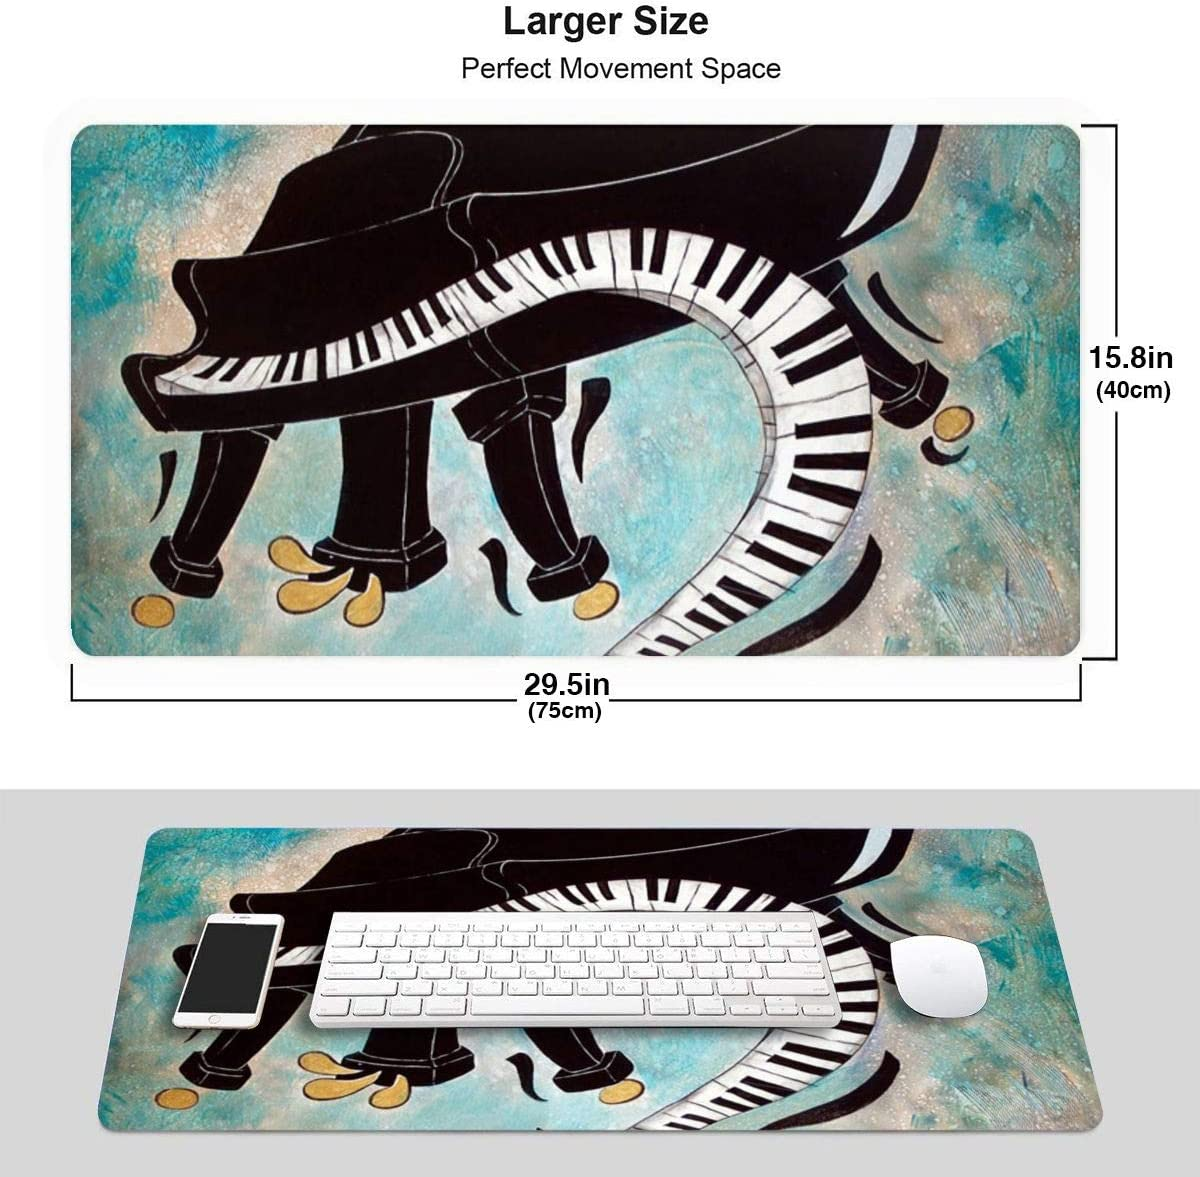 for Work /& Gaming Office /& Home Non-Slip Base Desk Pad Keyboard Mat Long Mousepad Love Cool Baseball Extended Gaming Mouse Pad with Stitched Edges Water-Resistant 29.5x15.7In